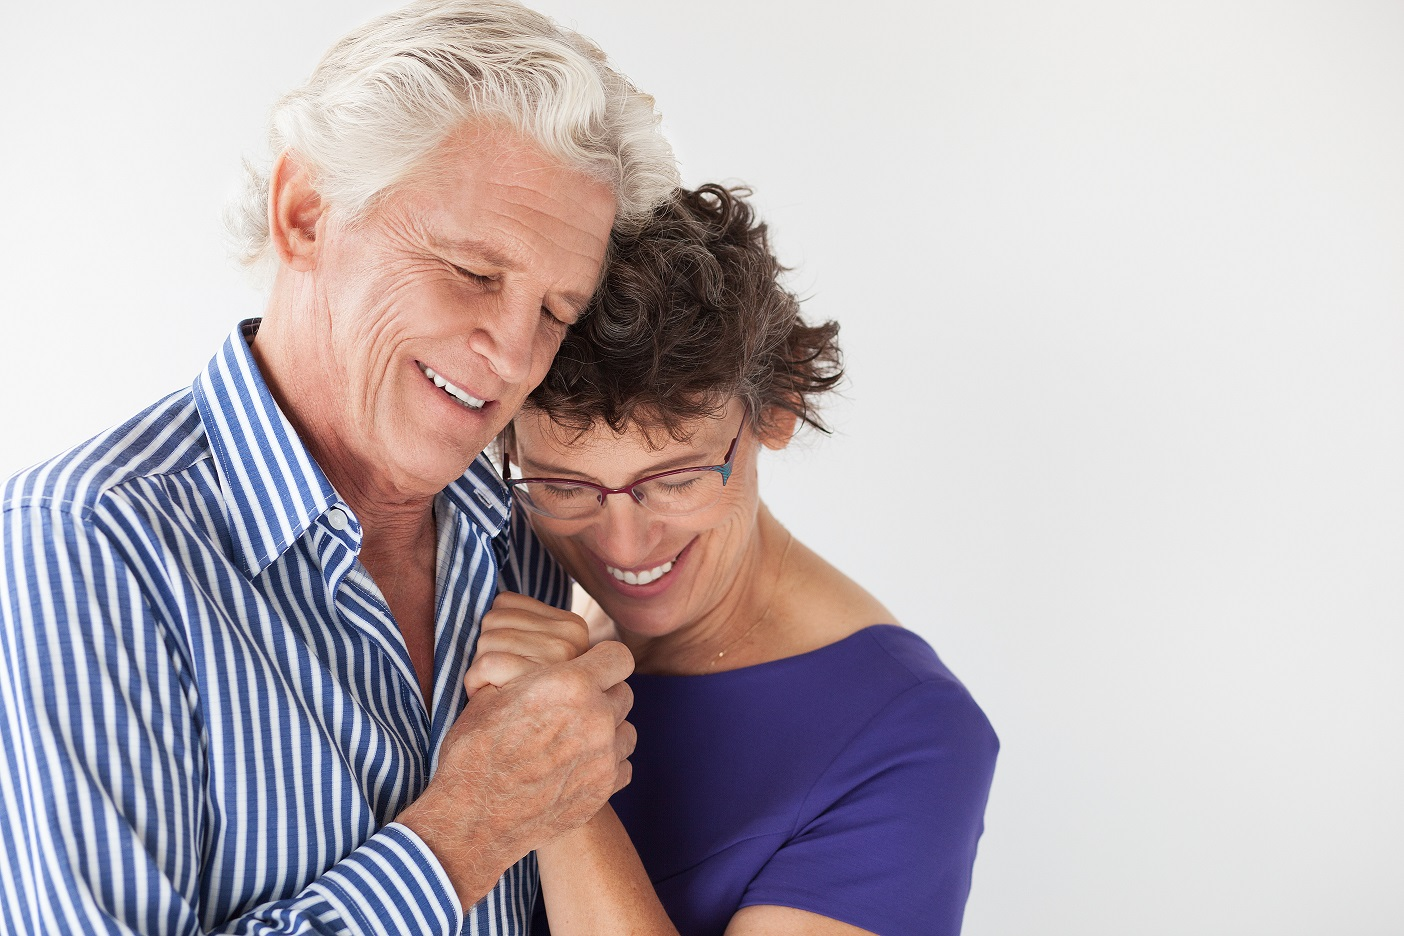 Affectionate senior couple embracing and dancing